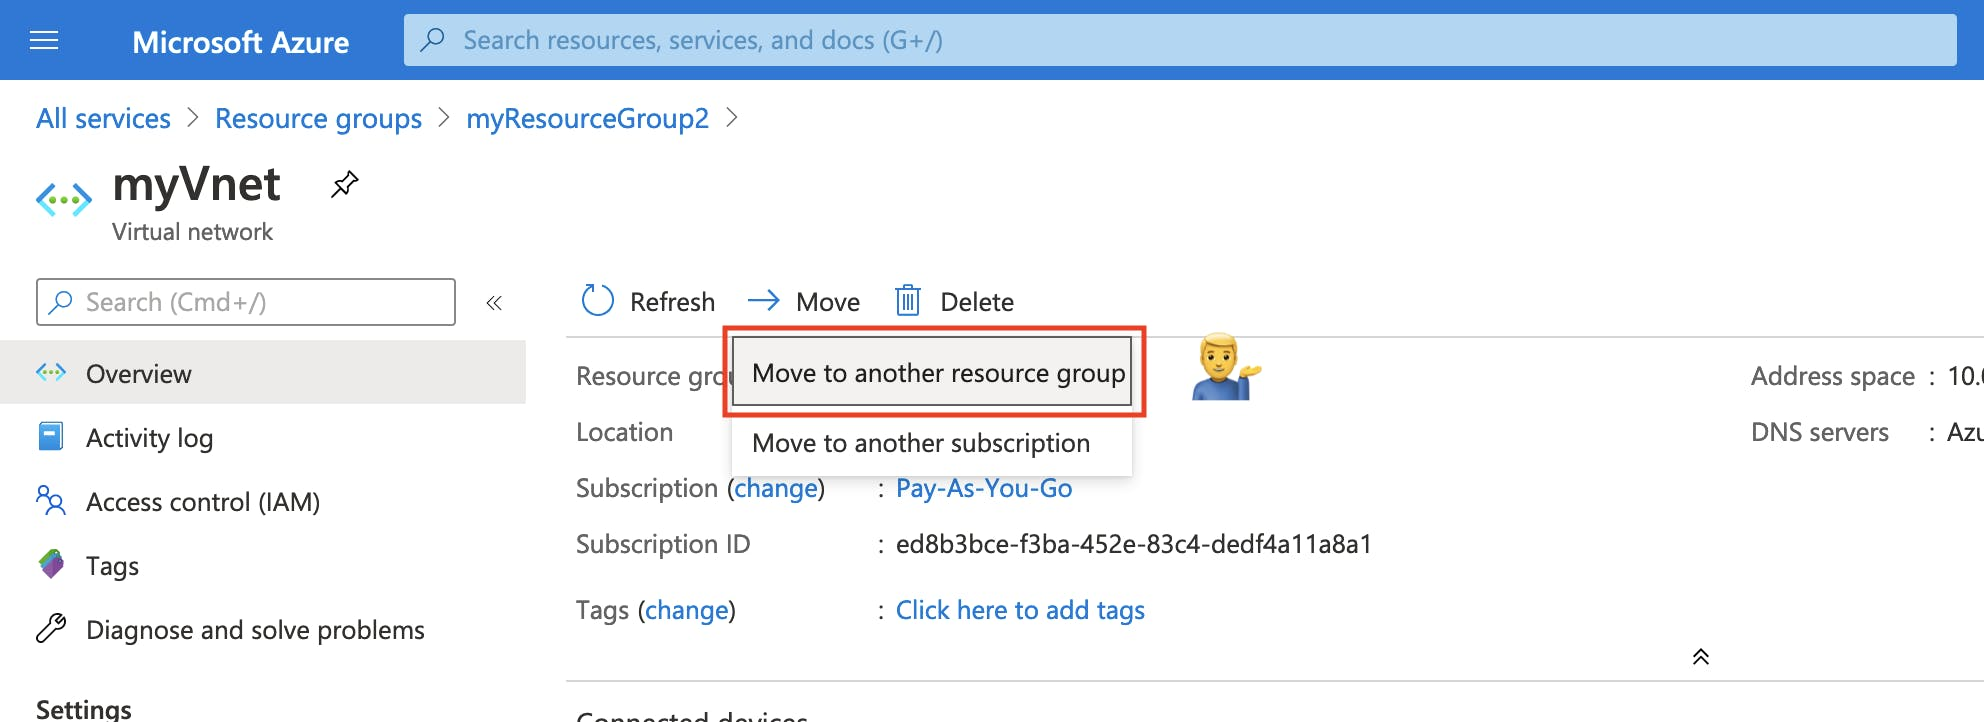 Move resources to another resource group